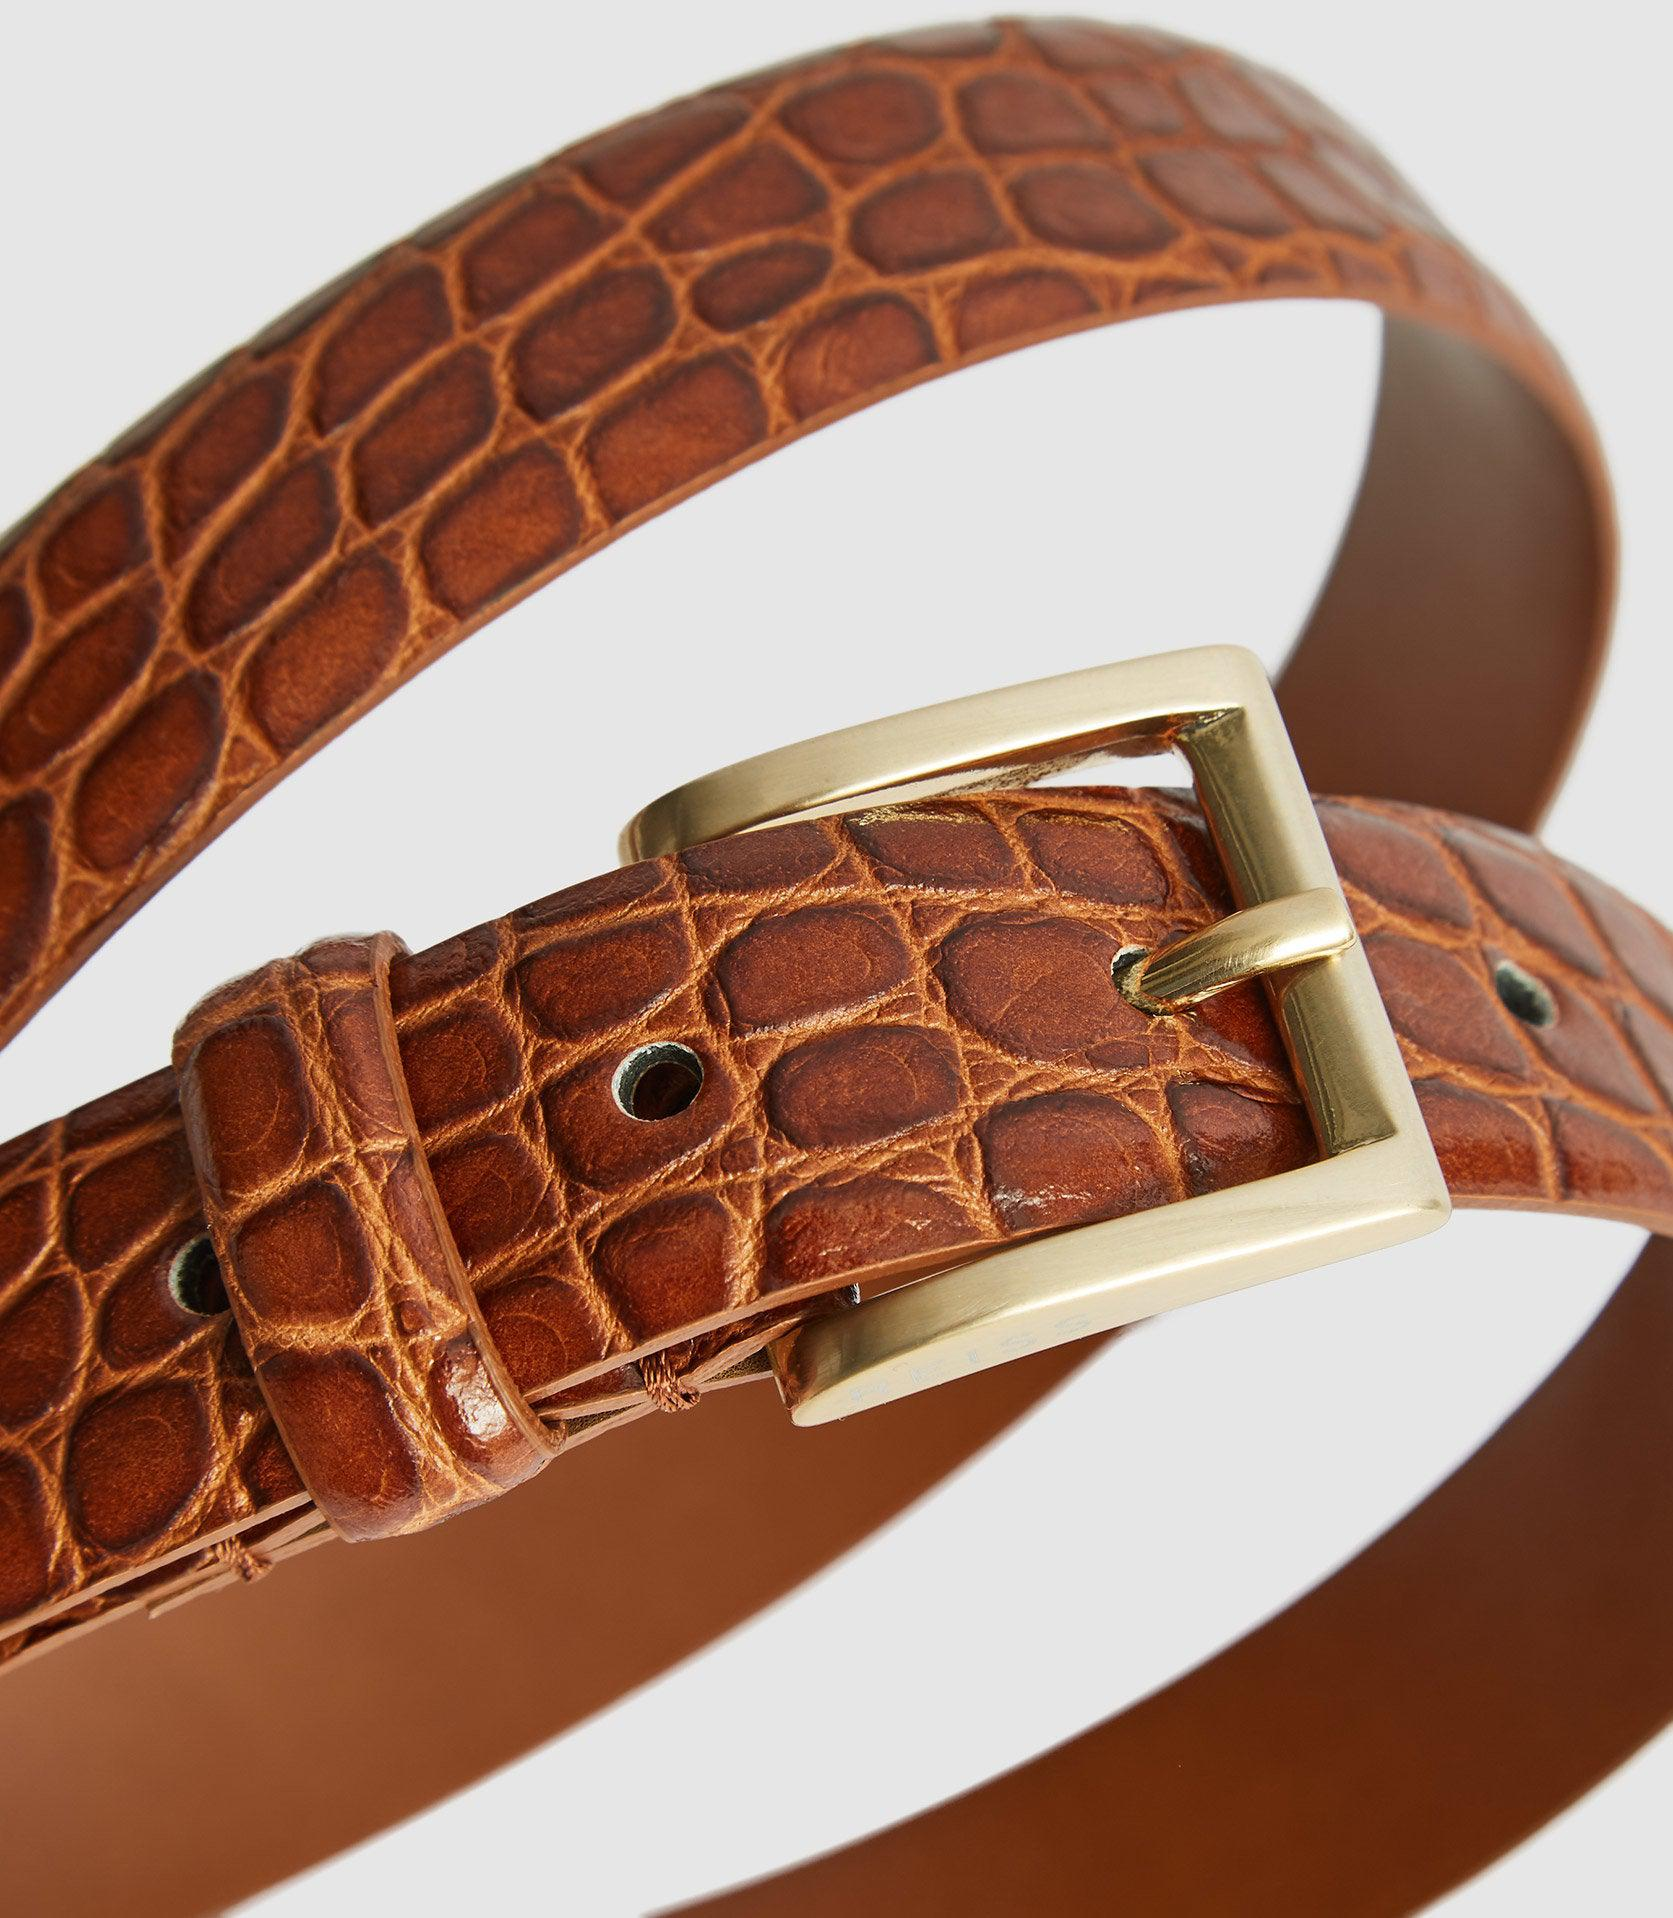 MOLLY - LEATHER CROC EMBOSSED BELT 1